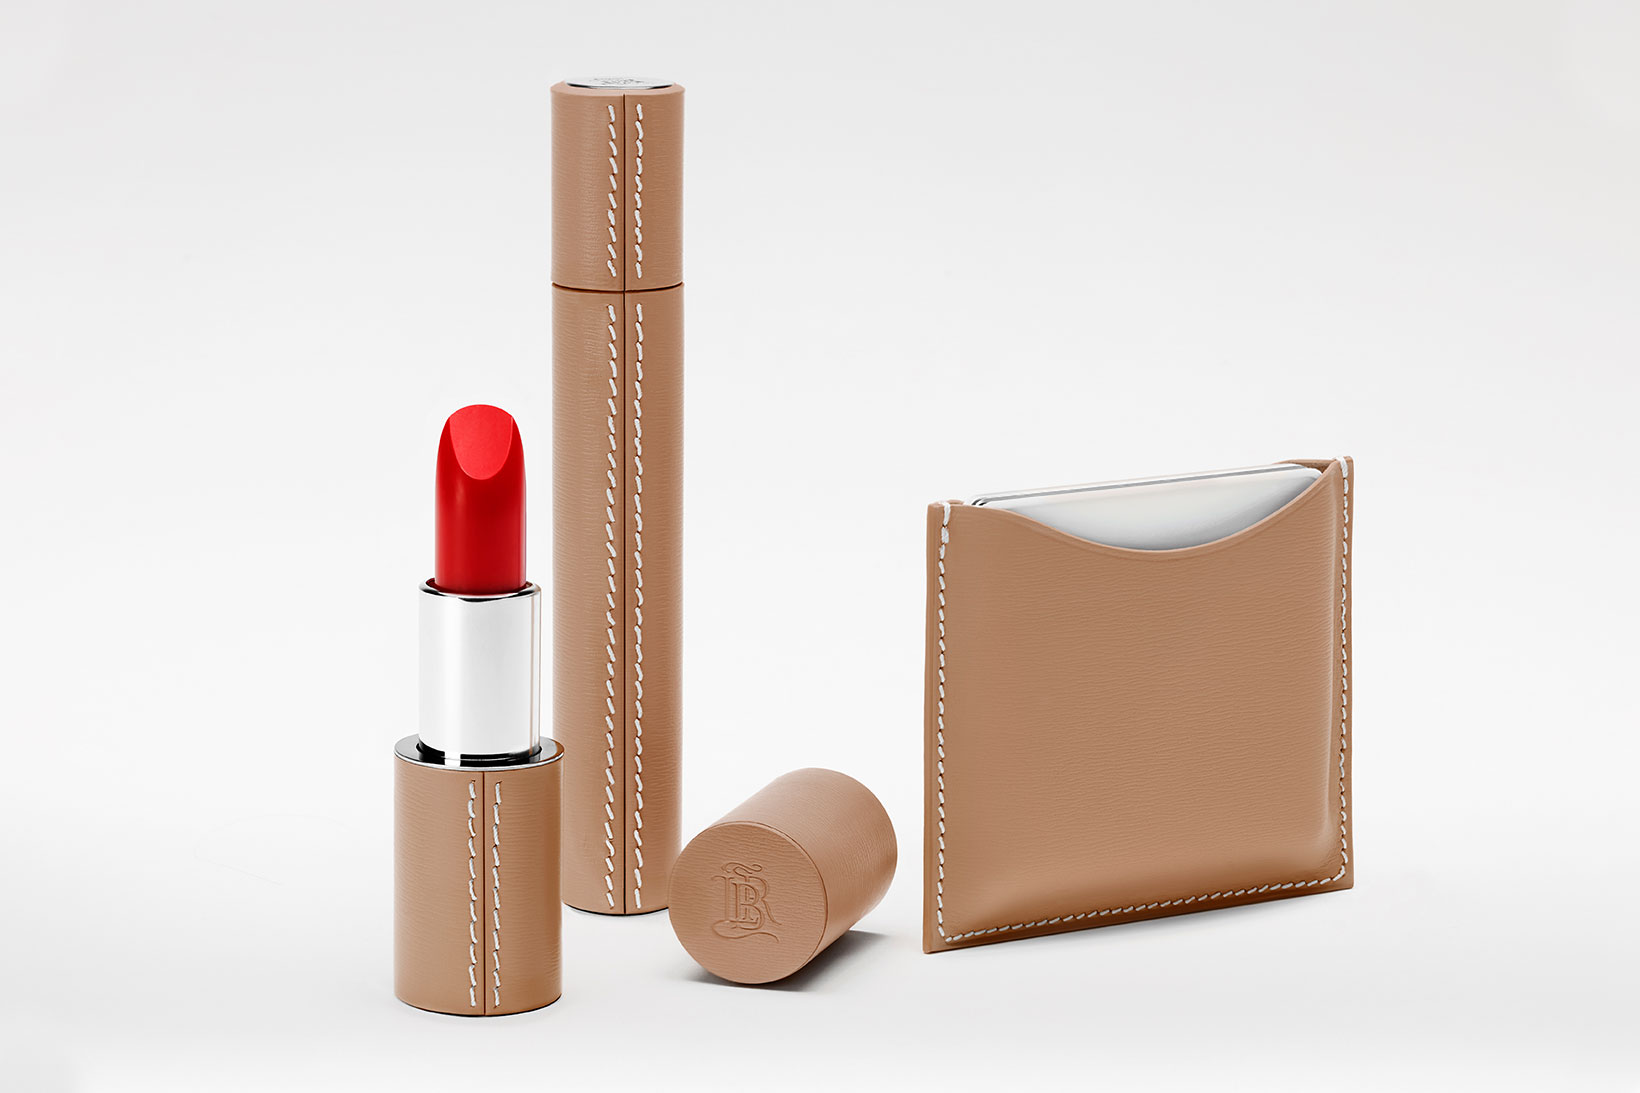 la-bouche-rouge-sustainable-clean-beauty-makeup-launch-1